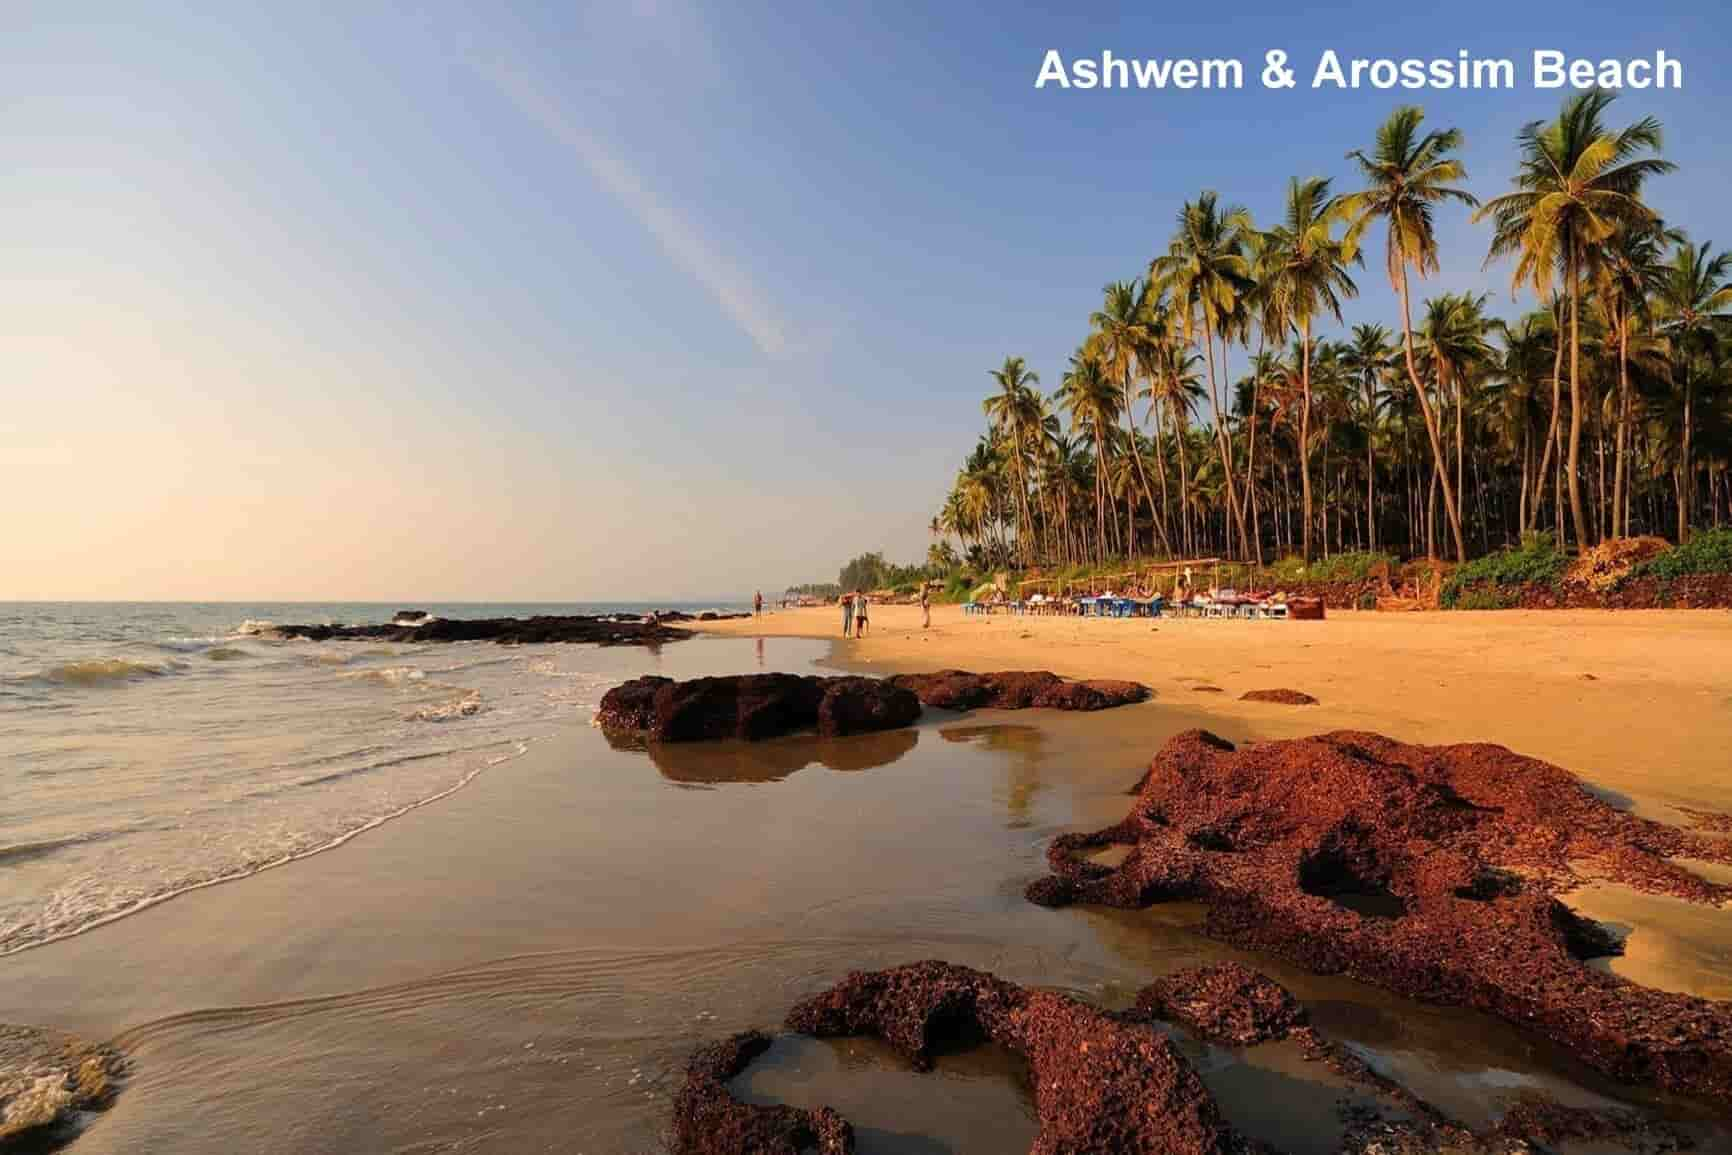 Ashwem & Arossim Beach